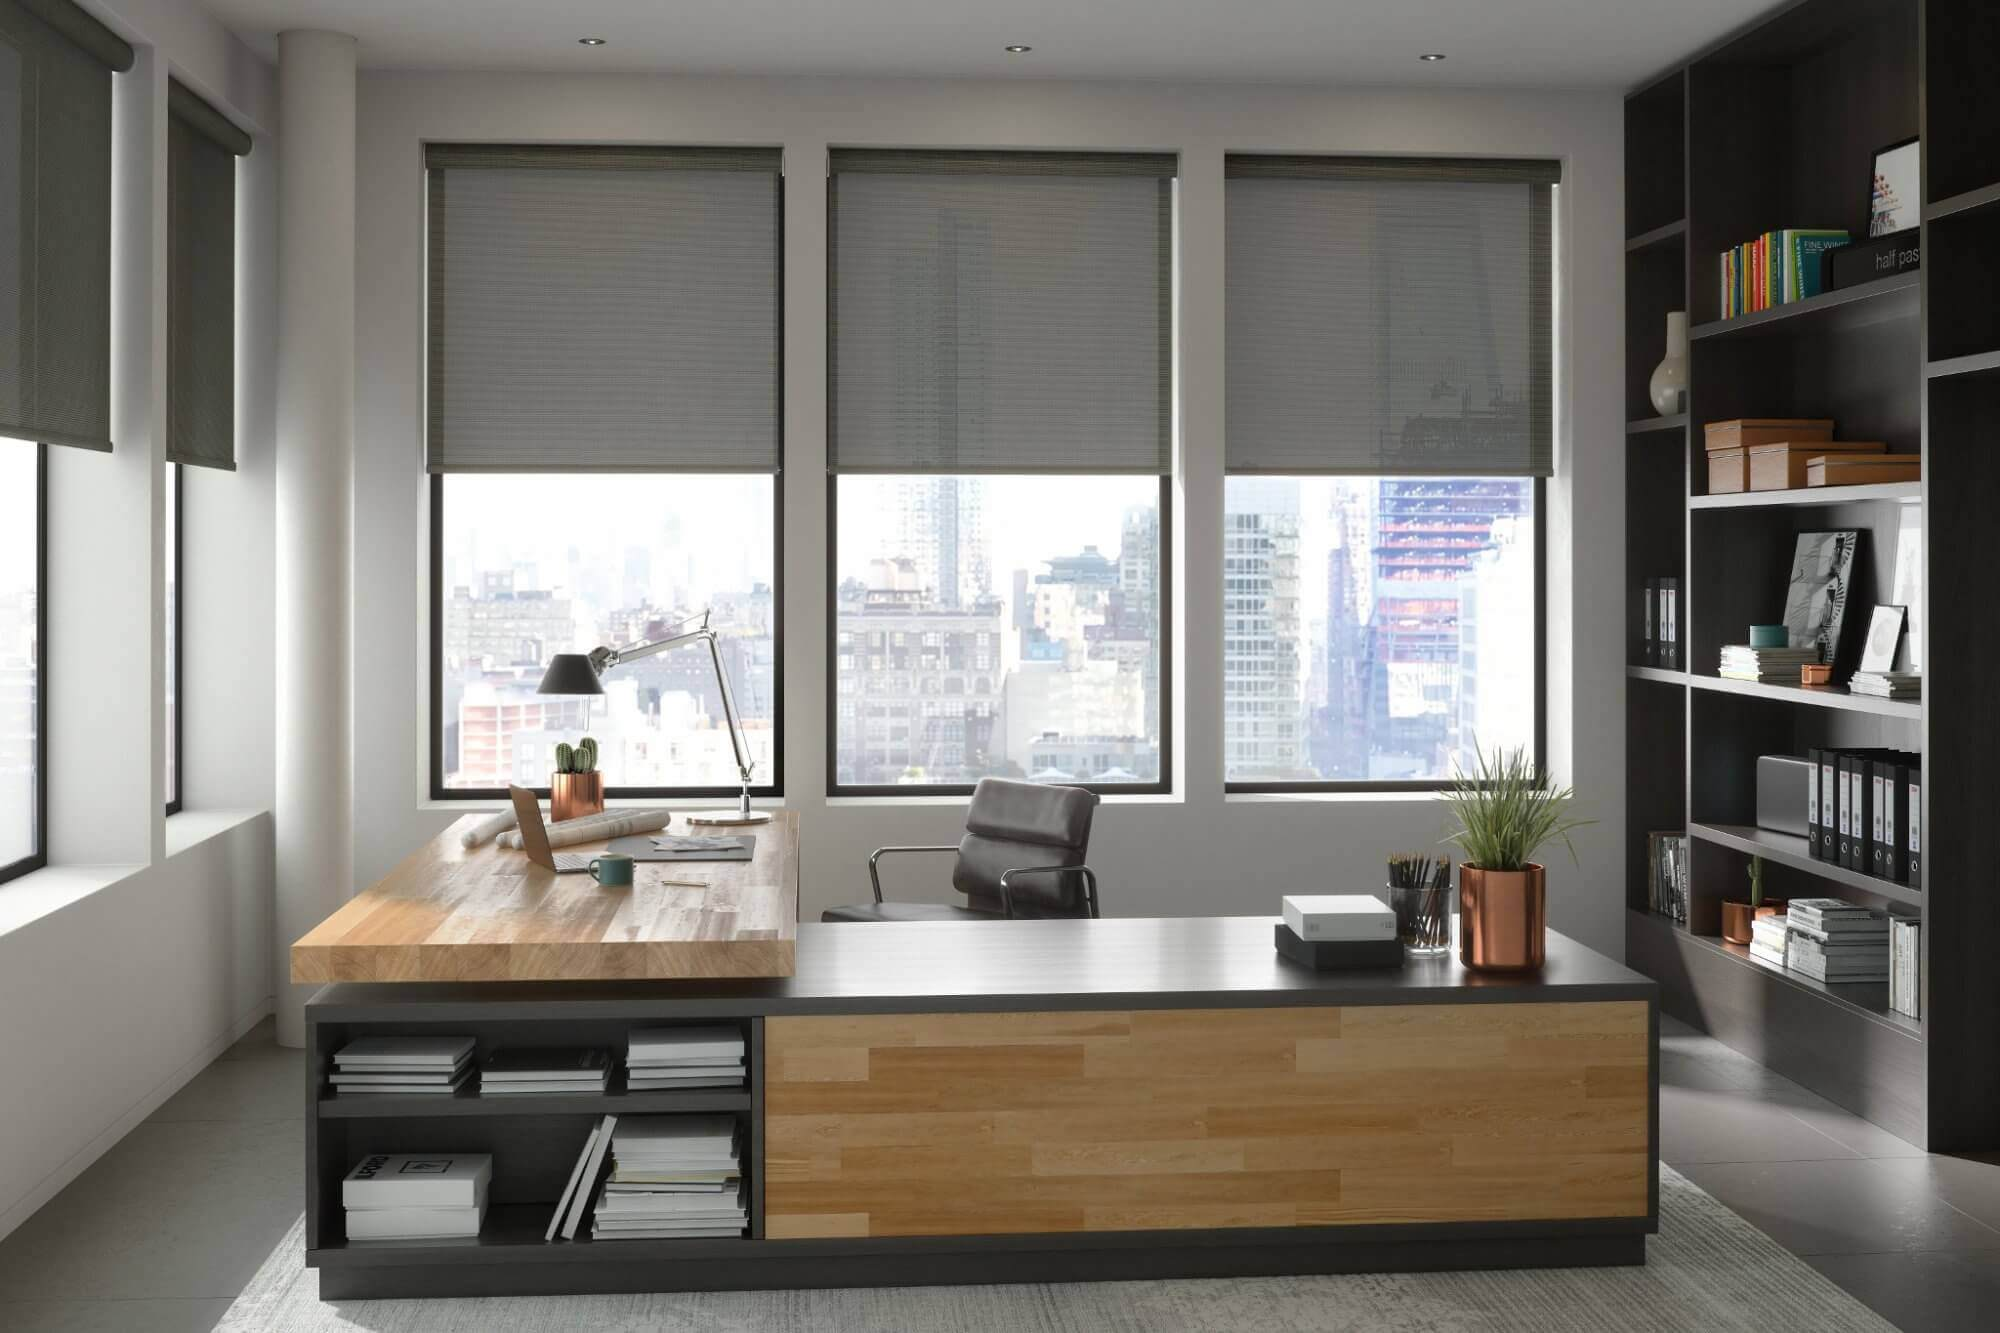 Window treatments in an office space need block unwanted glare or harsh light.